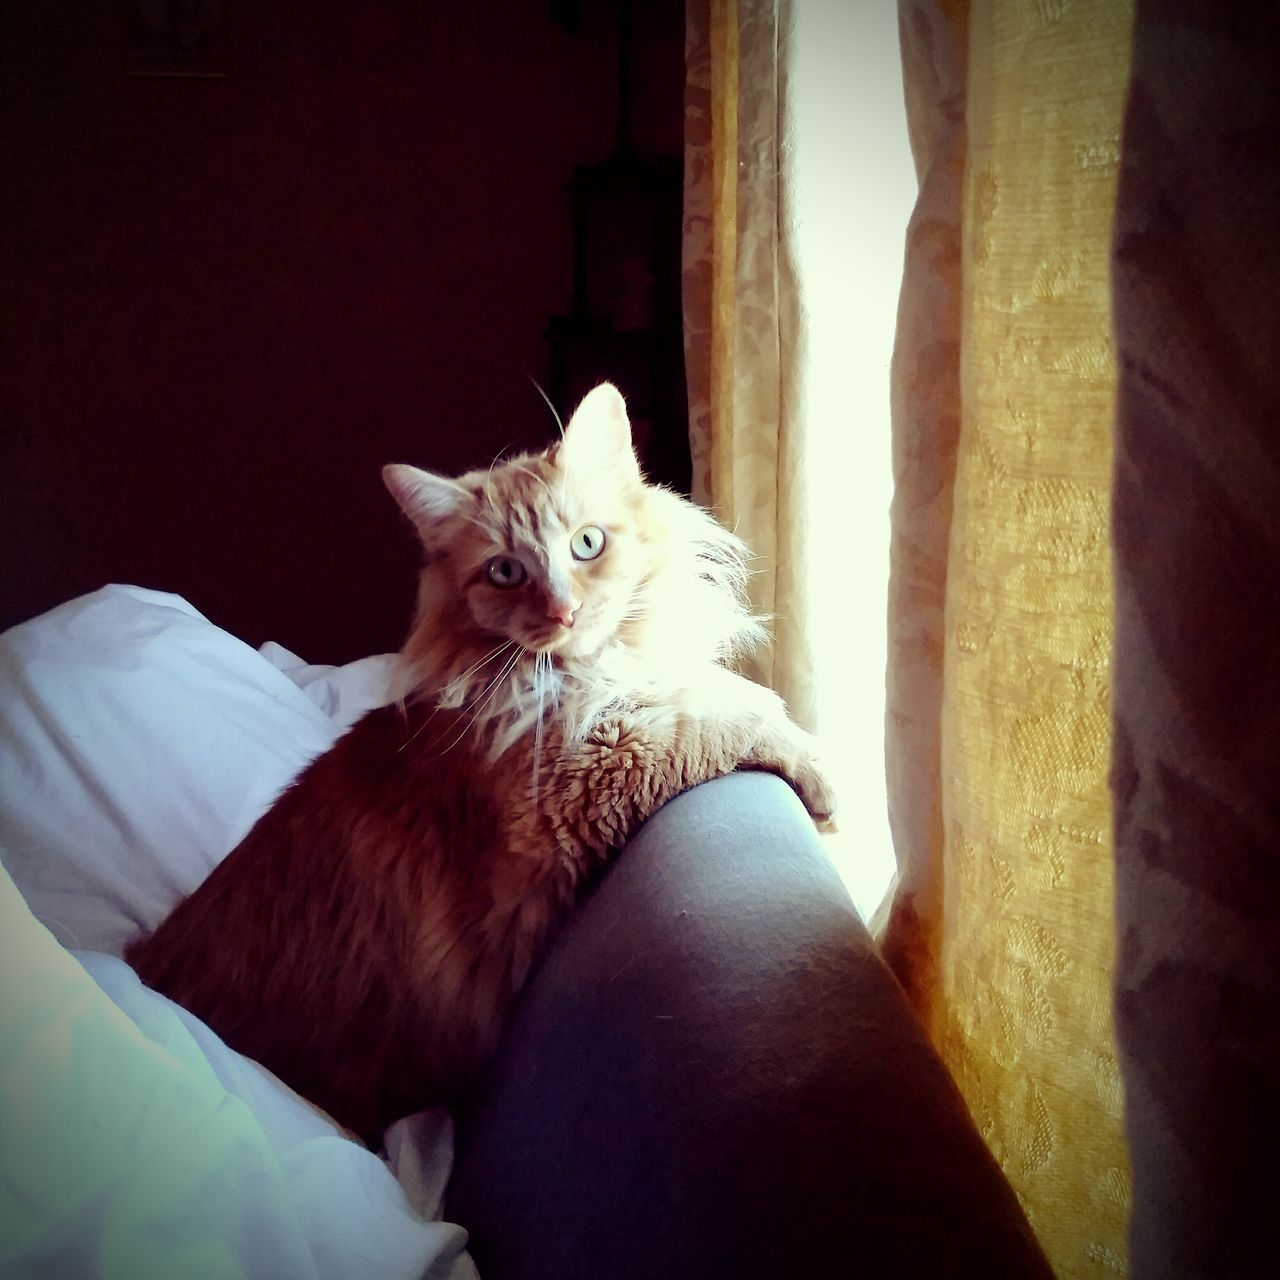 domestic cat, pets, domestic animals, one animal, mammal, animal themes, feline, indoors, sitting, relaxation, looking at camera, bed, portrait, one person, day, close-up